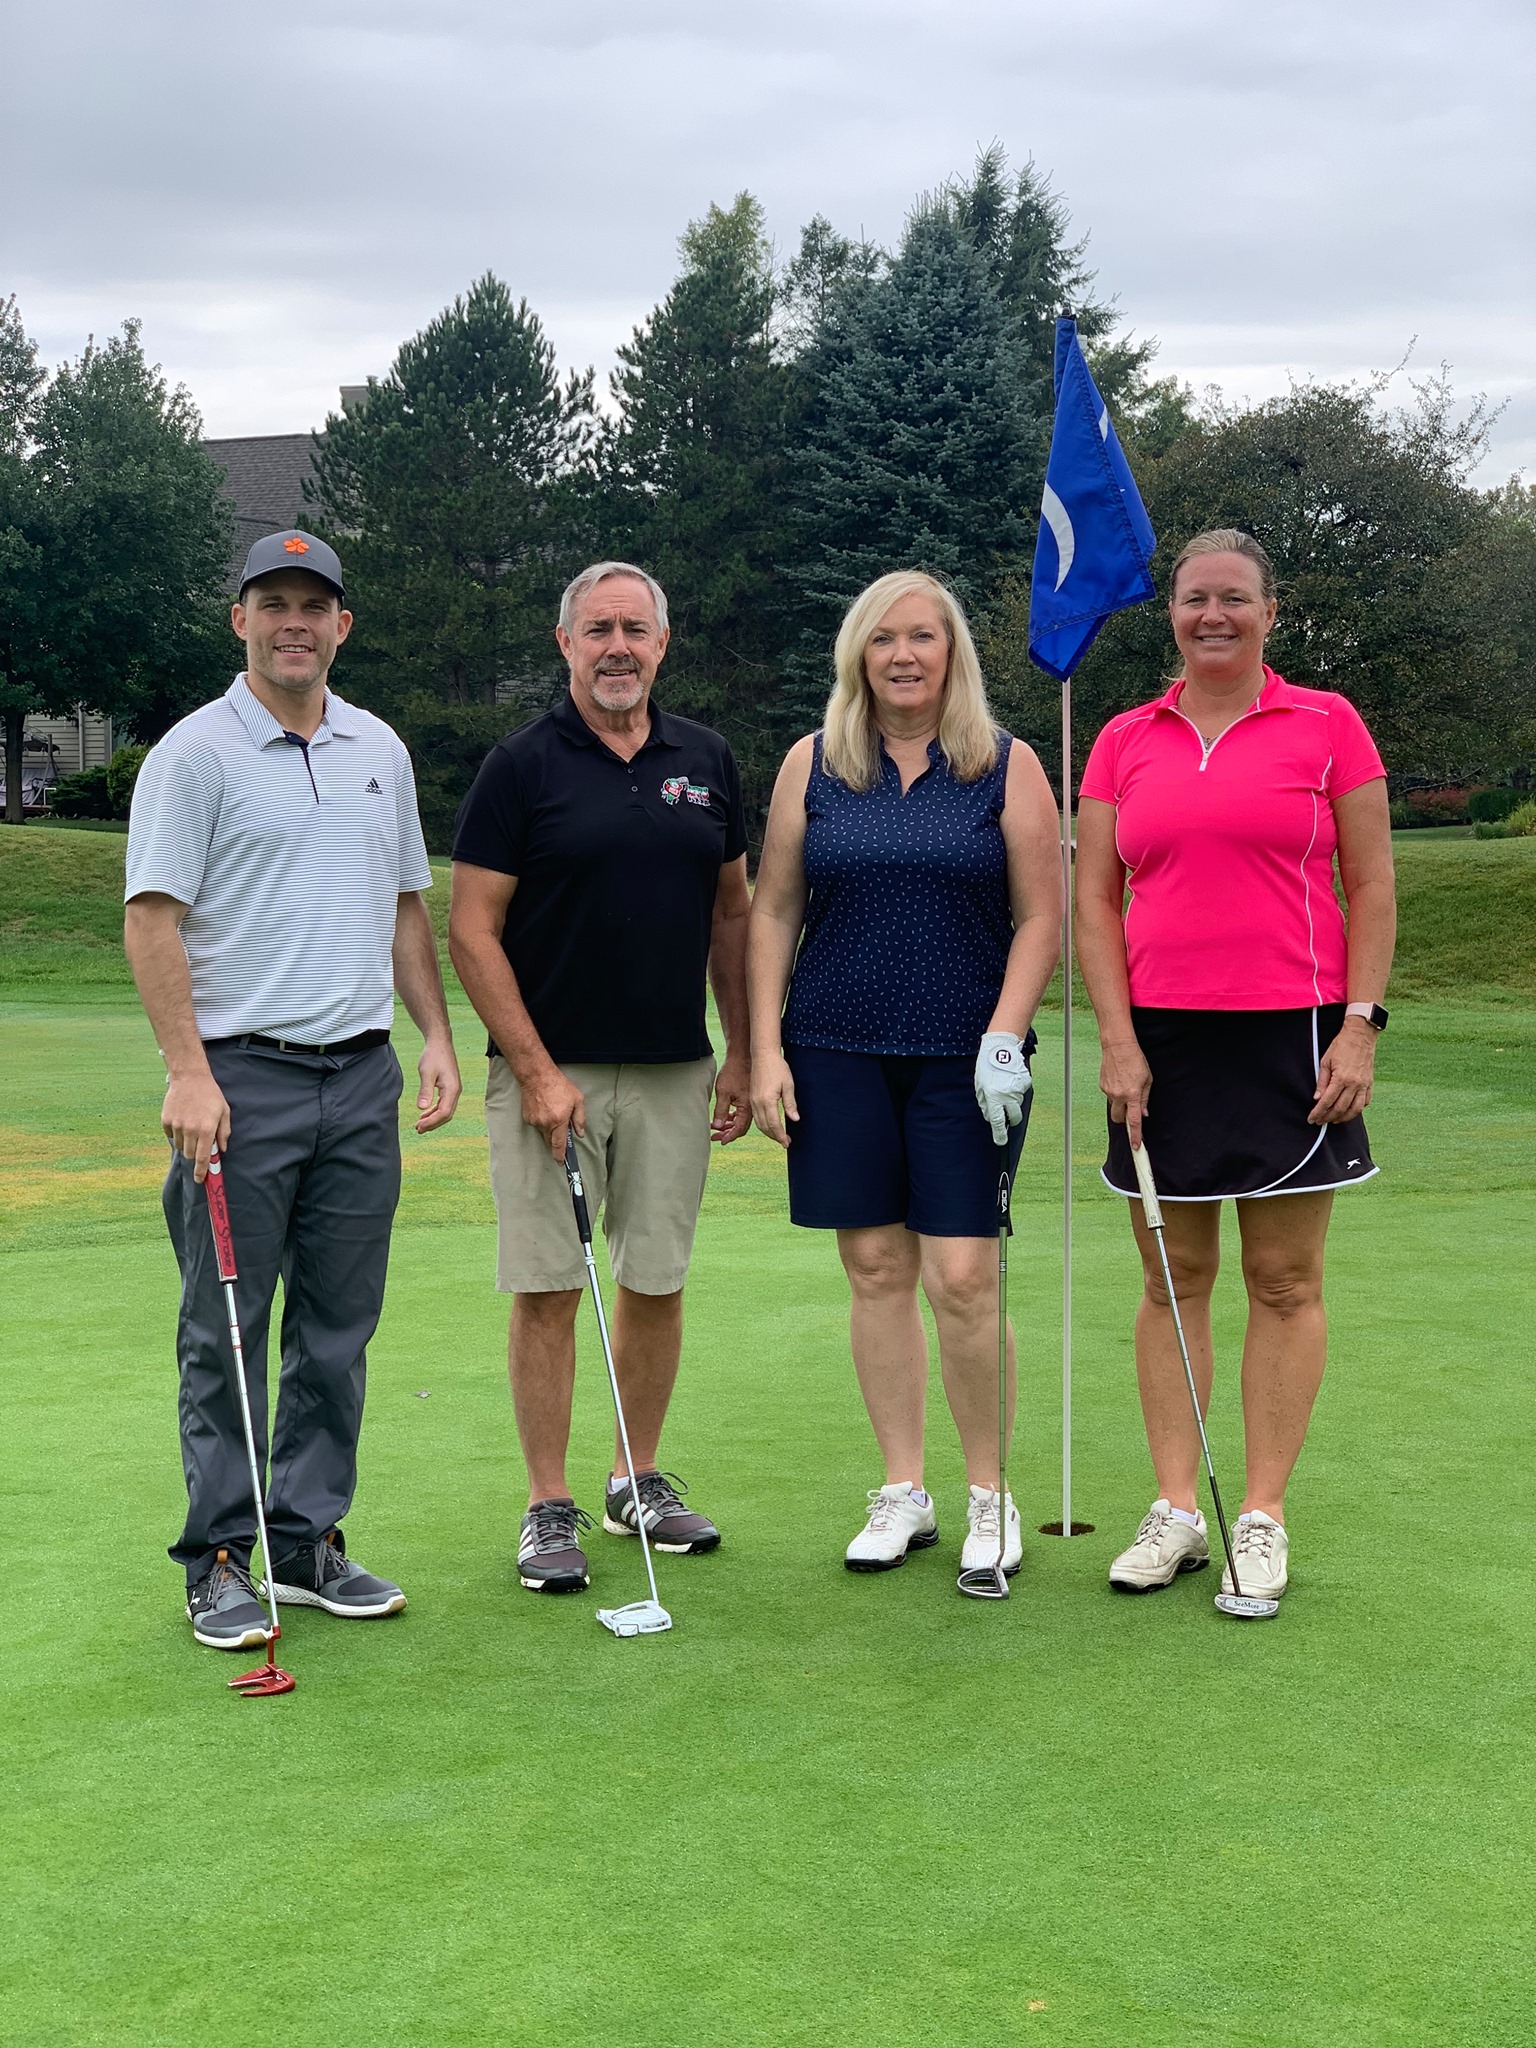 SACC-Golf-Outing-2021-Jet's-Pizza.jpg